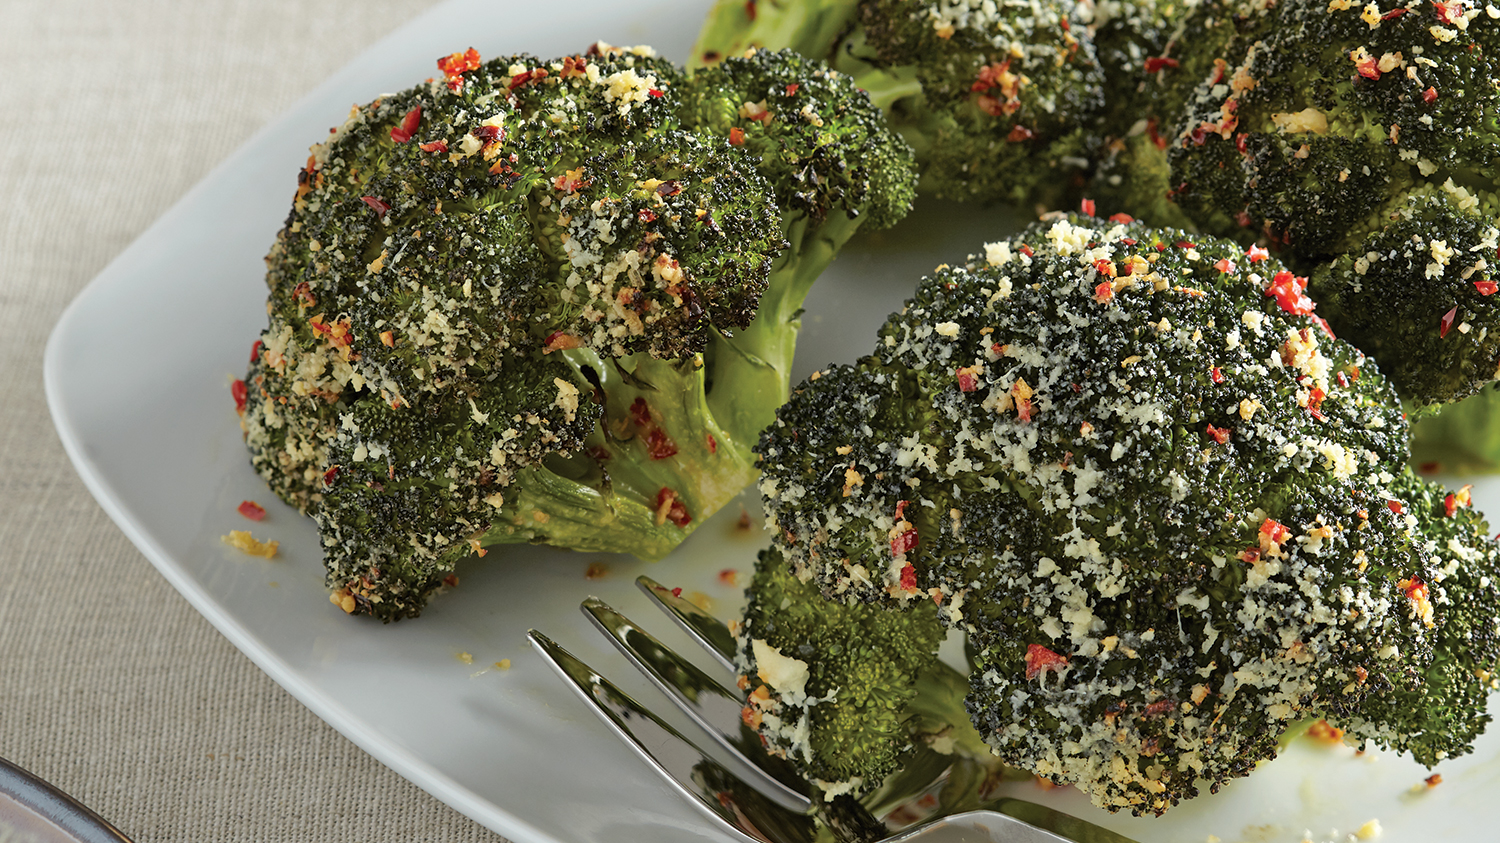 parmesan and chili roasted broccoli crowns